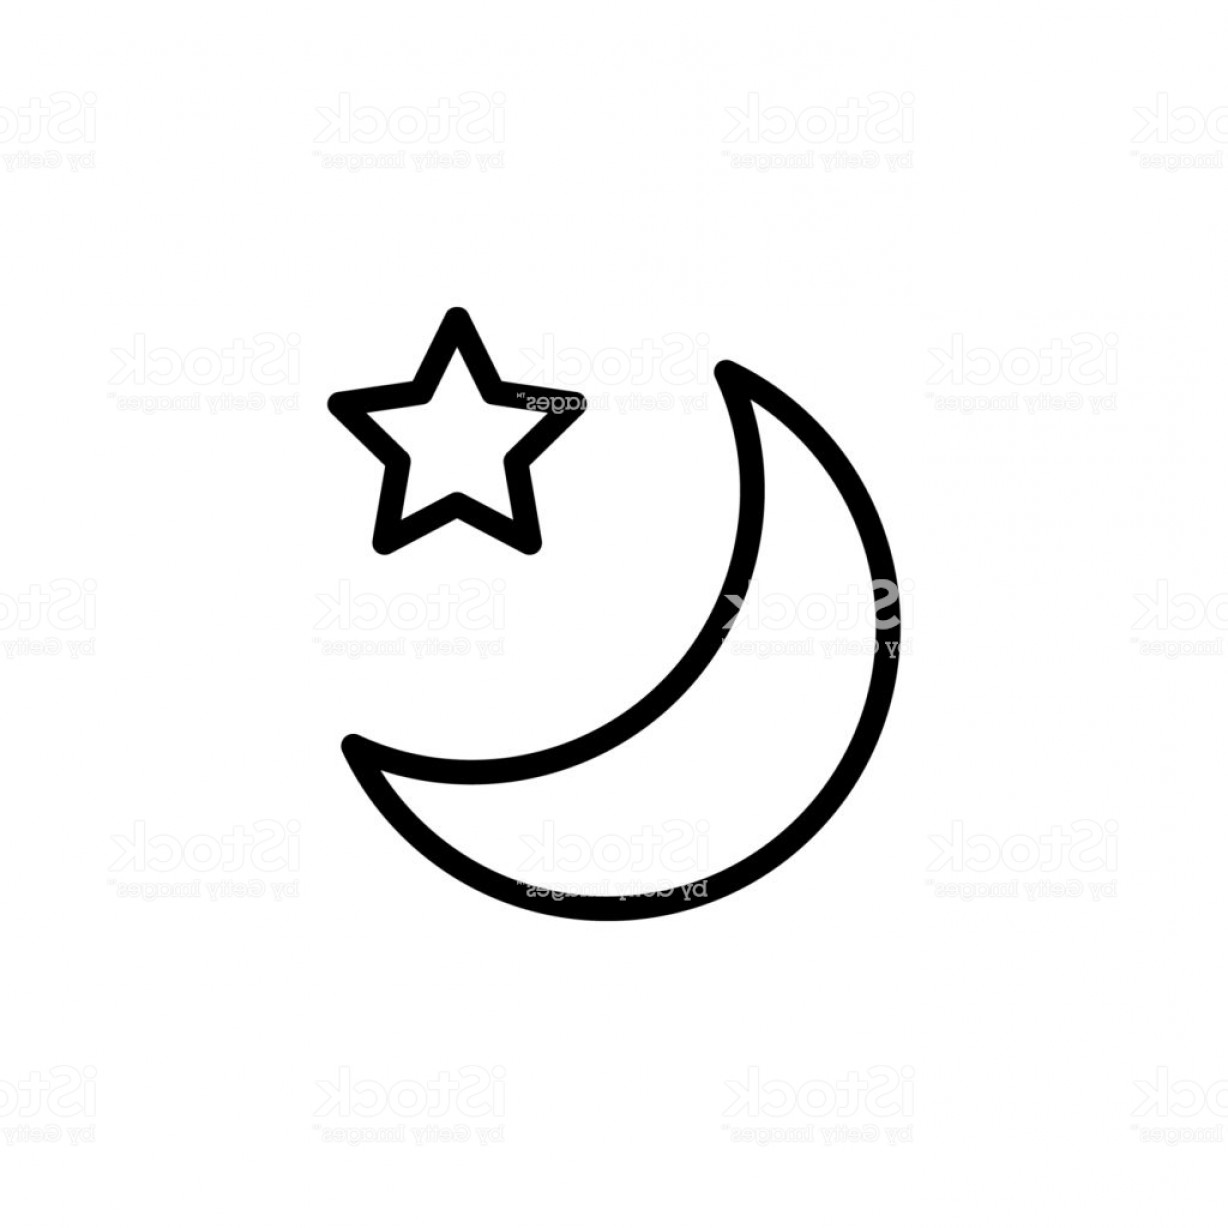 Simple Moon Vector Art: Star And Crescent Moon Icon Element Of Simple Icon For Websites Web Design Mobile Gm